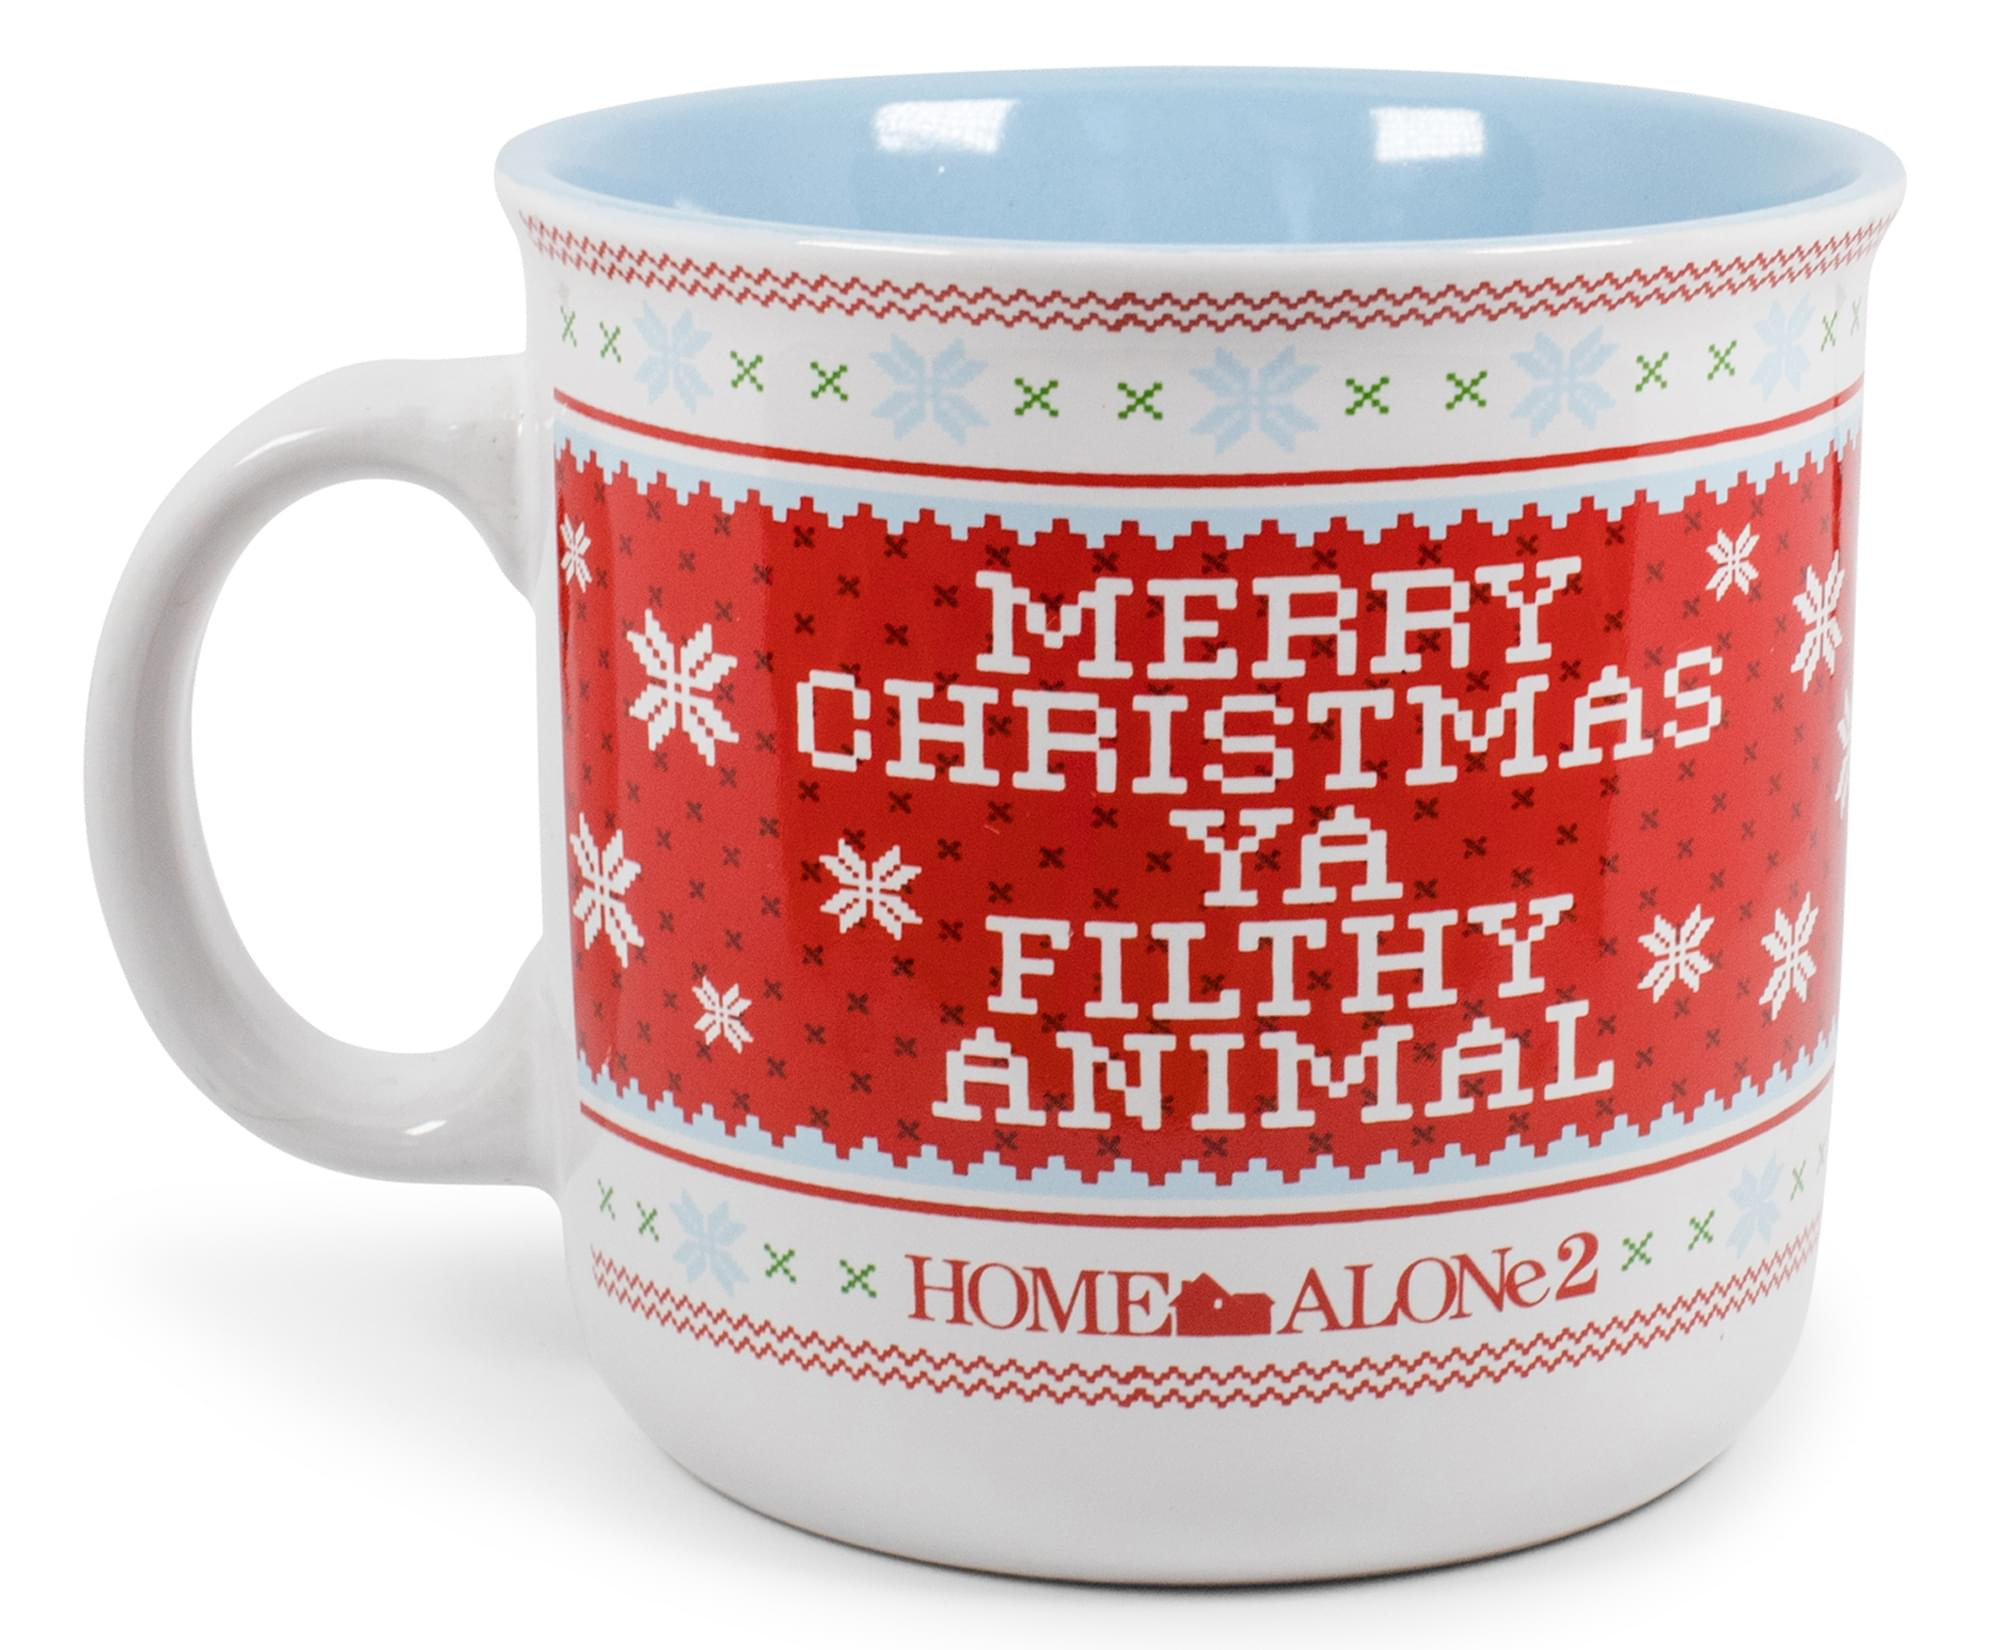 Home Alone 2 Filthy Animal Ceramic Camper Mug | Holds 20 Ounces